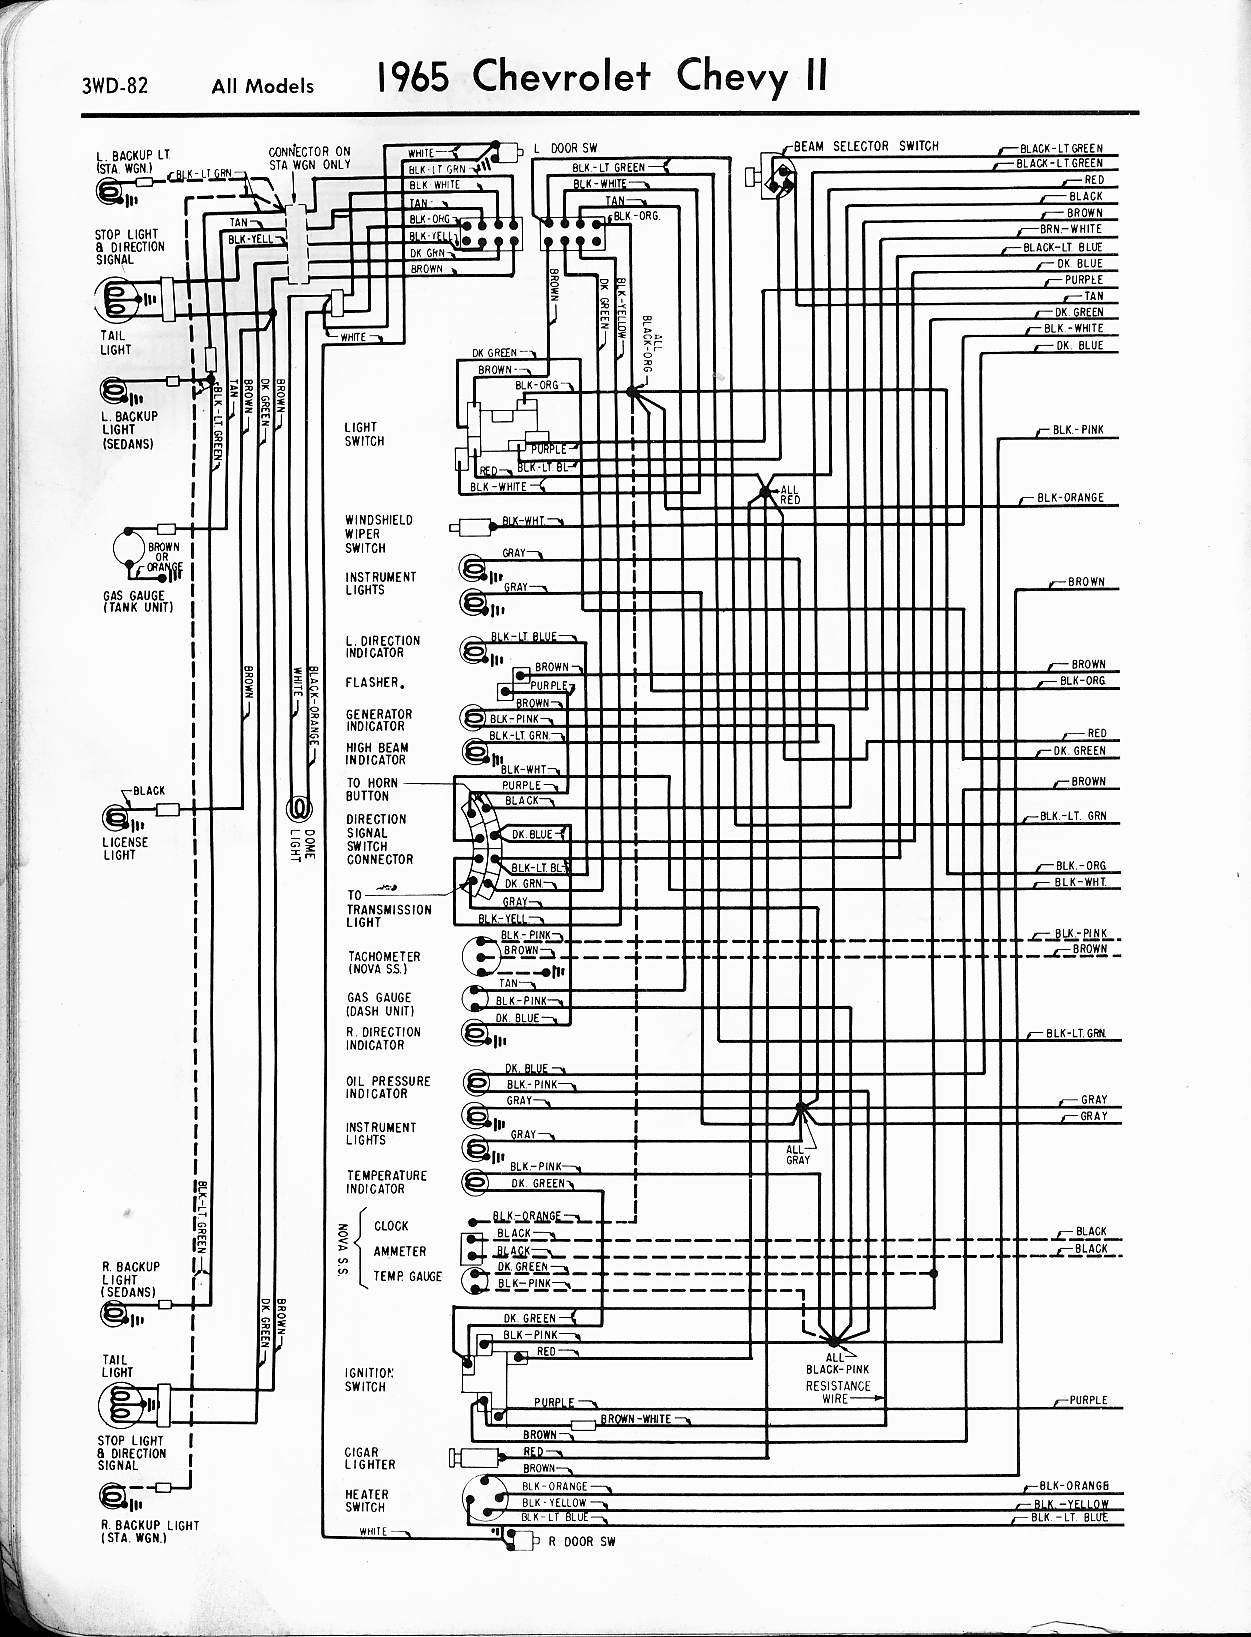 1966 Chevy Impala Wiring Diagram - Enthusiast Wiring Diagrams •